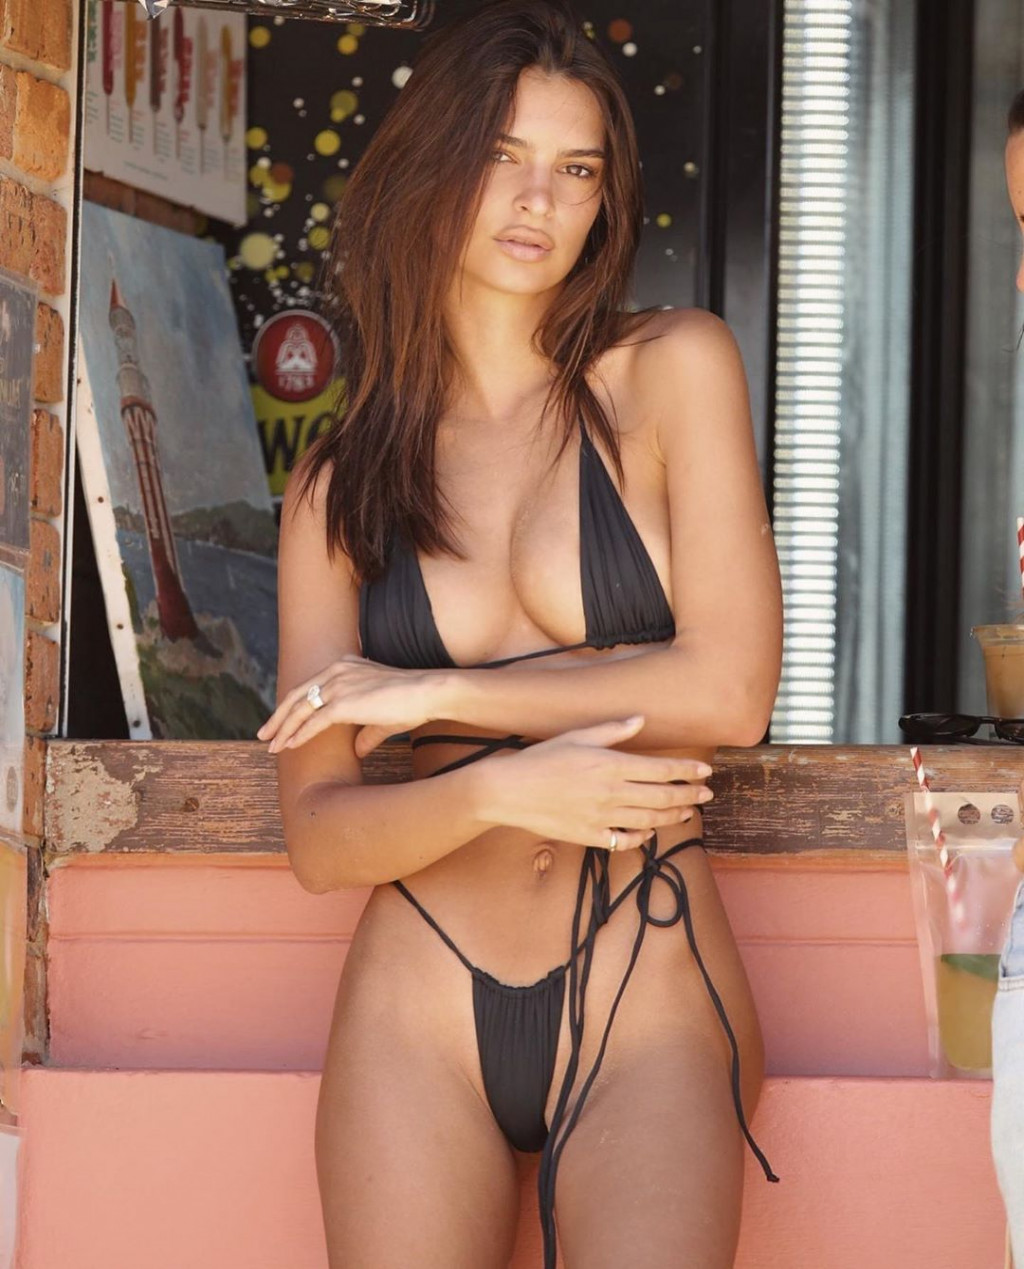 Emily Ratajkowski Hot Bikini Photos - Emily Ratajkowski Net Worth, Pics, Wallpapers, Career and Biography